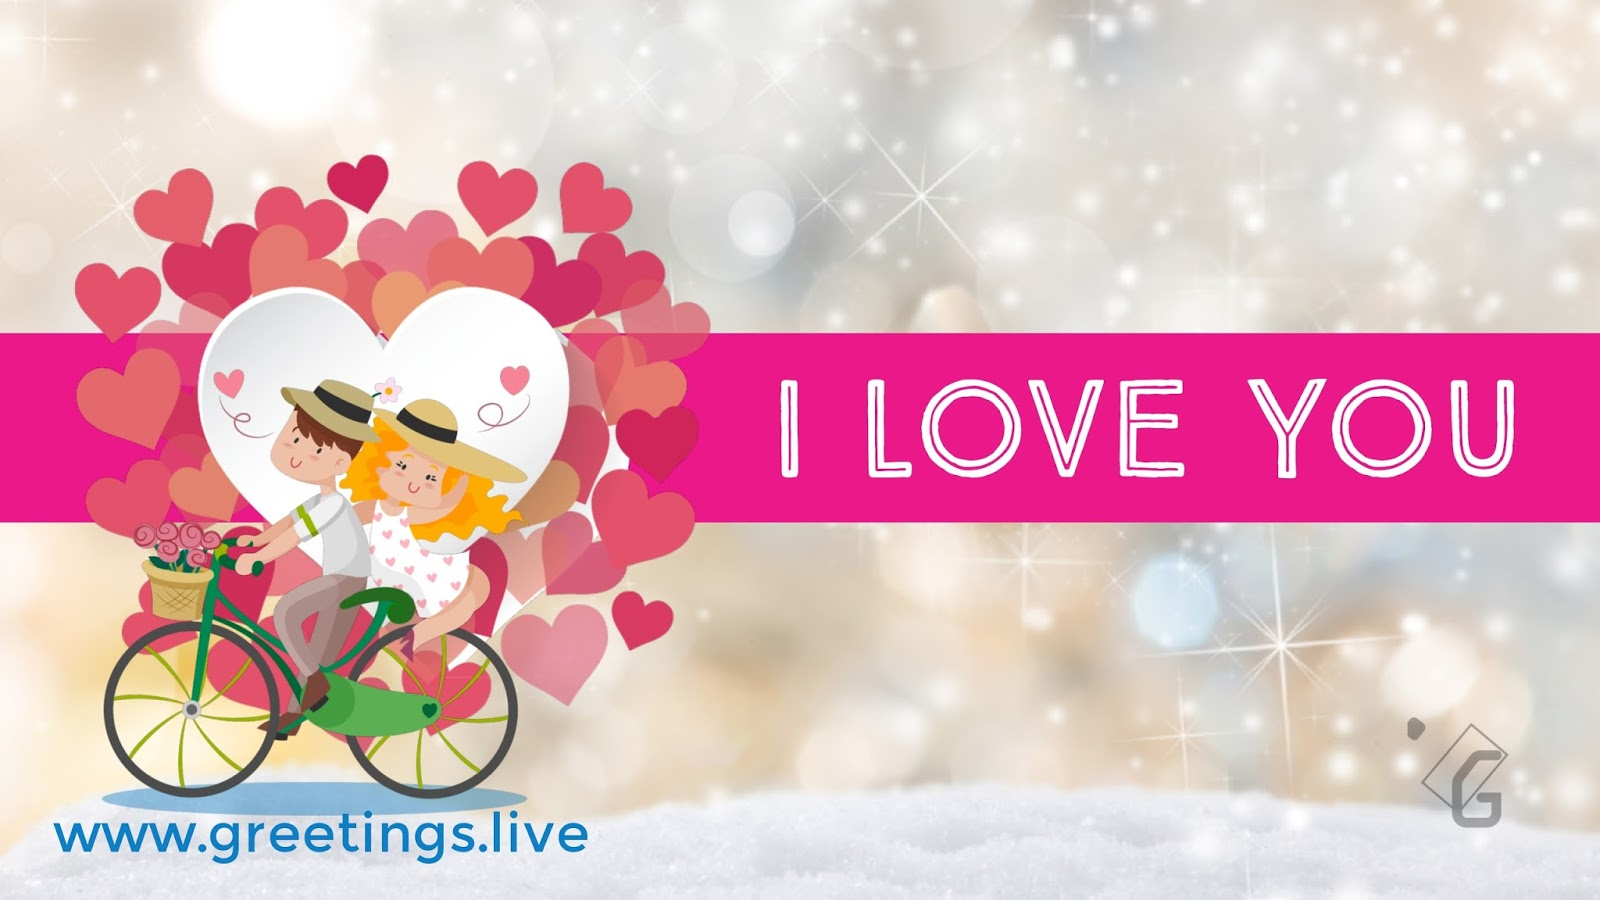 Greetingsve free hd images to express wishes all occasions i love you in english language m4hsunfo